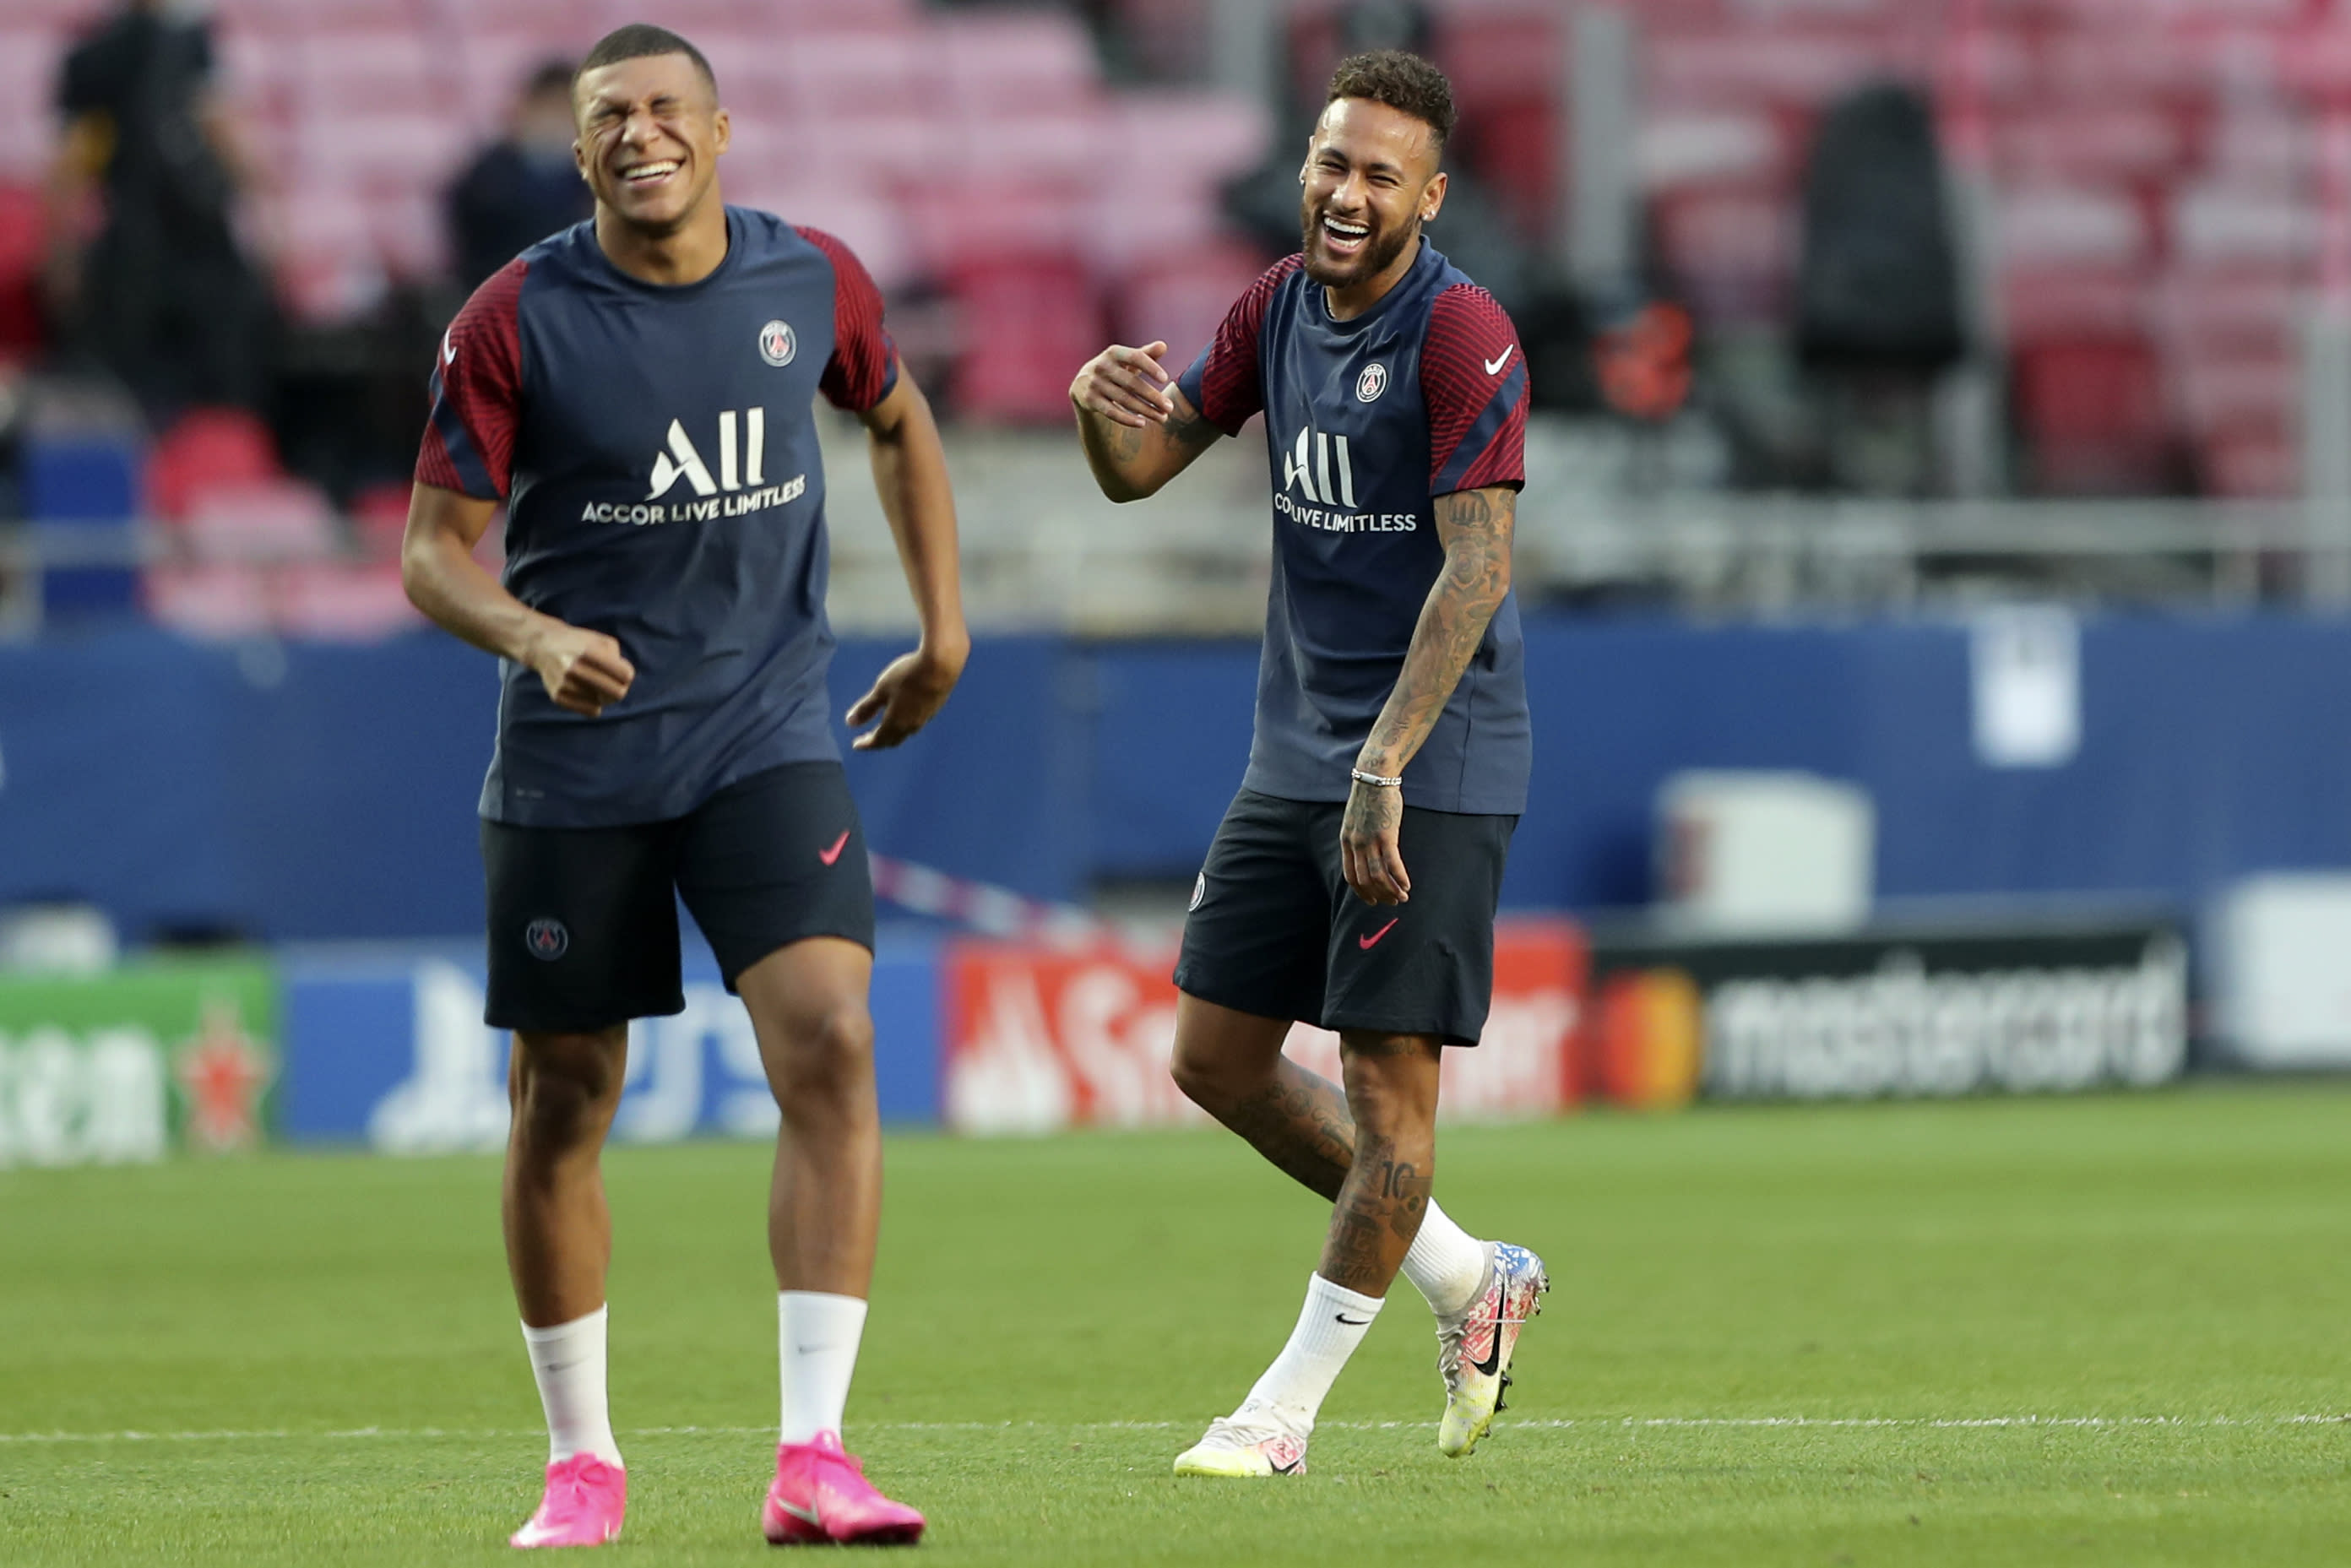 PSG's Neymar jokes with Kylian Mbappe, left, during a training session at the Luz stadium in Lisbon, Saturday Aug. 22, 2020. PSG will play Bayern Munich in the Champions League final soccer match on Sunday. (Miguel A. Lopes/Pool via AP)